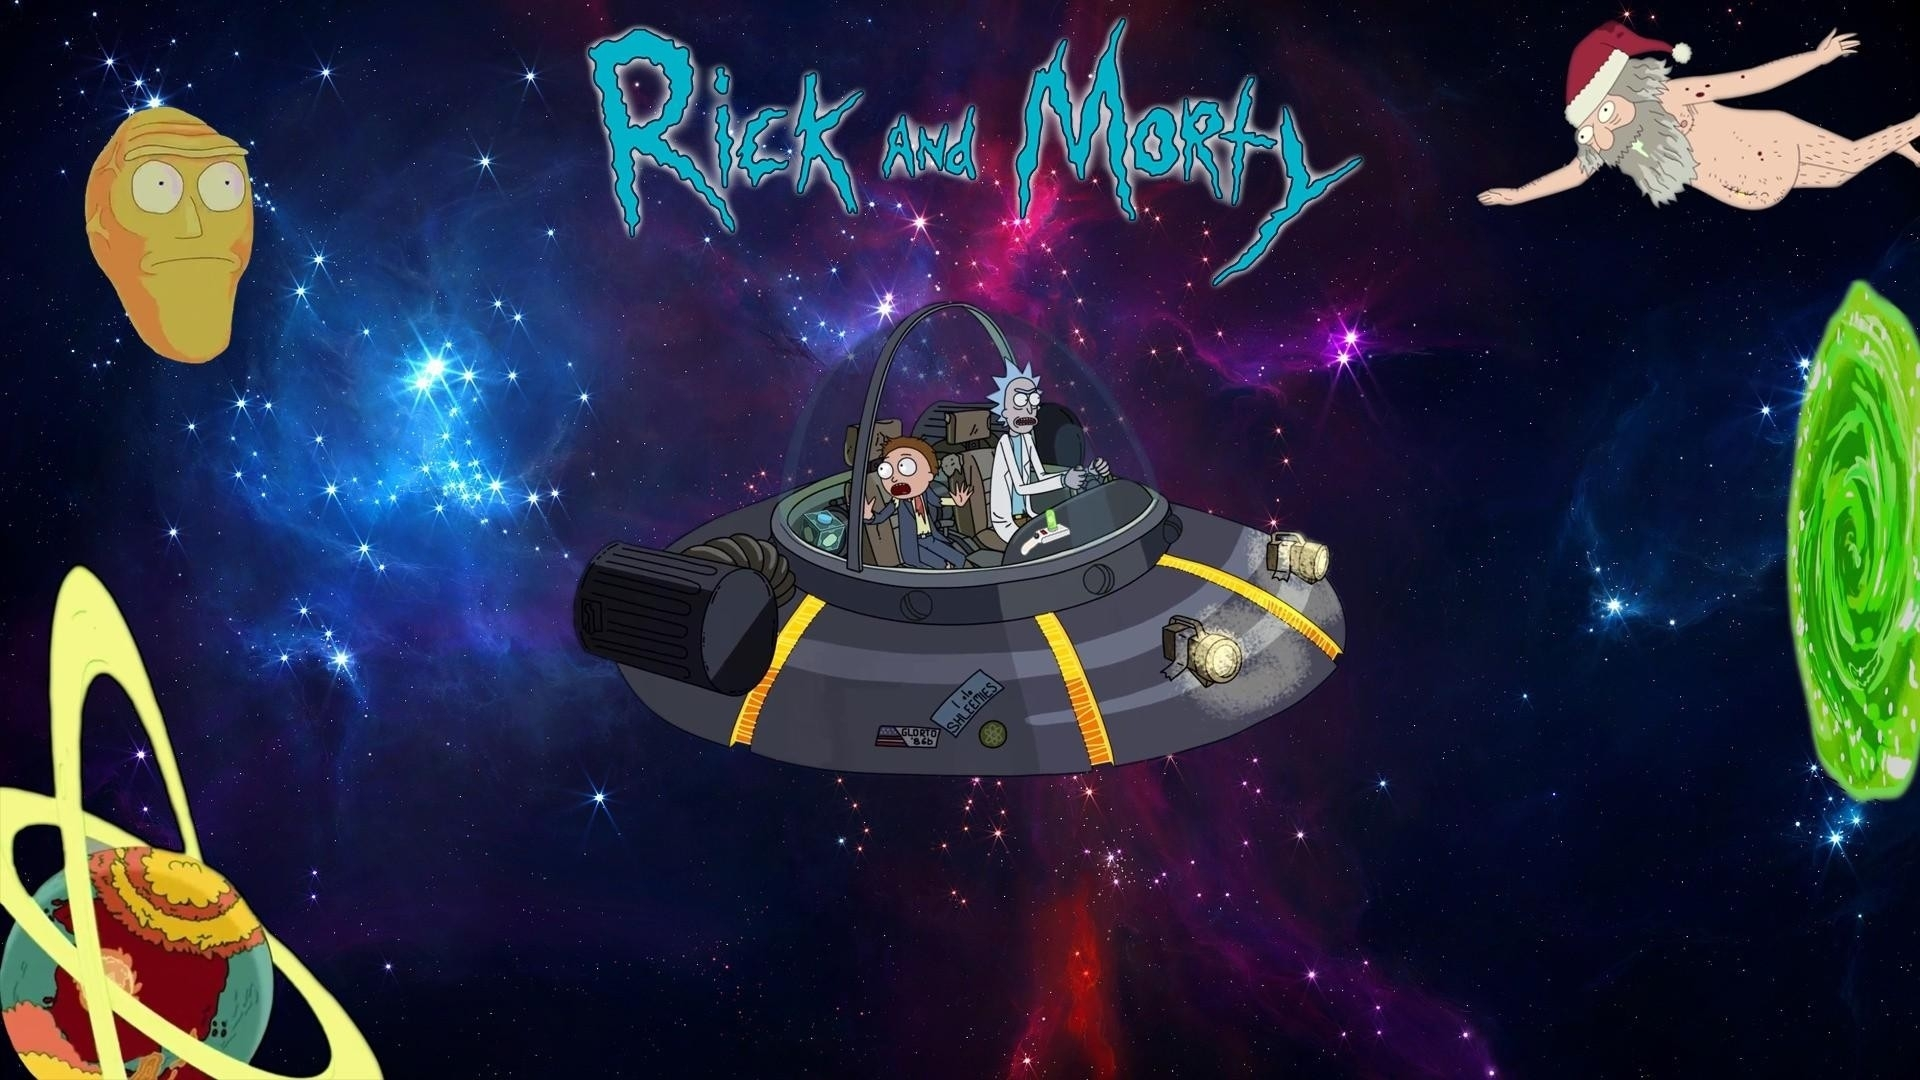 rick and morty desktop backgrounds hd - 2018 cute screensavers